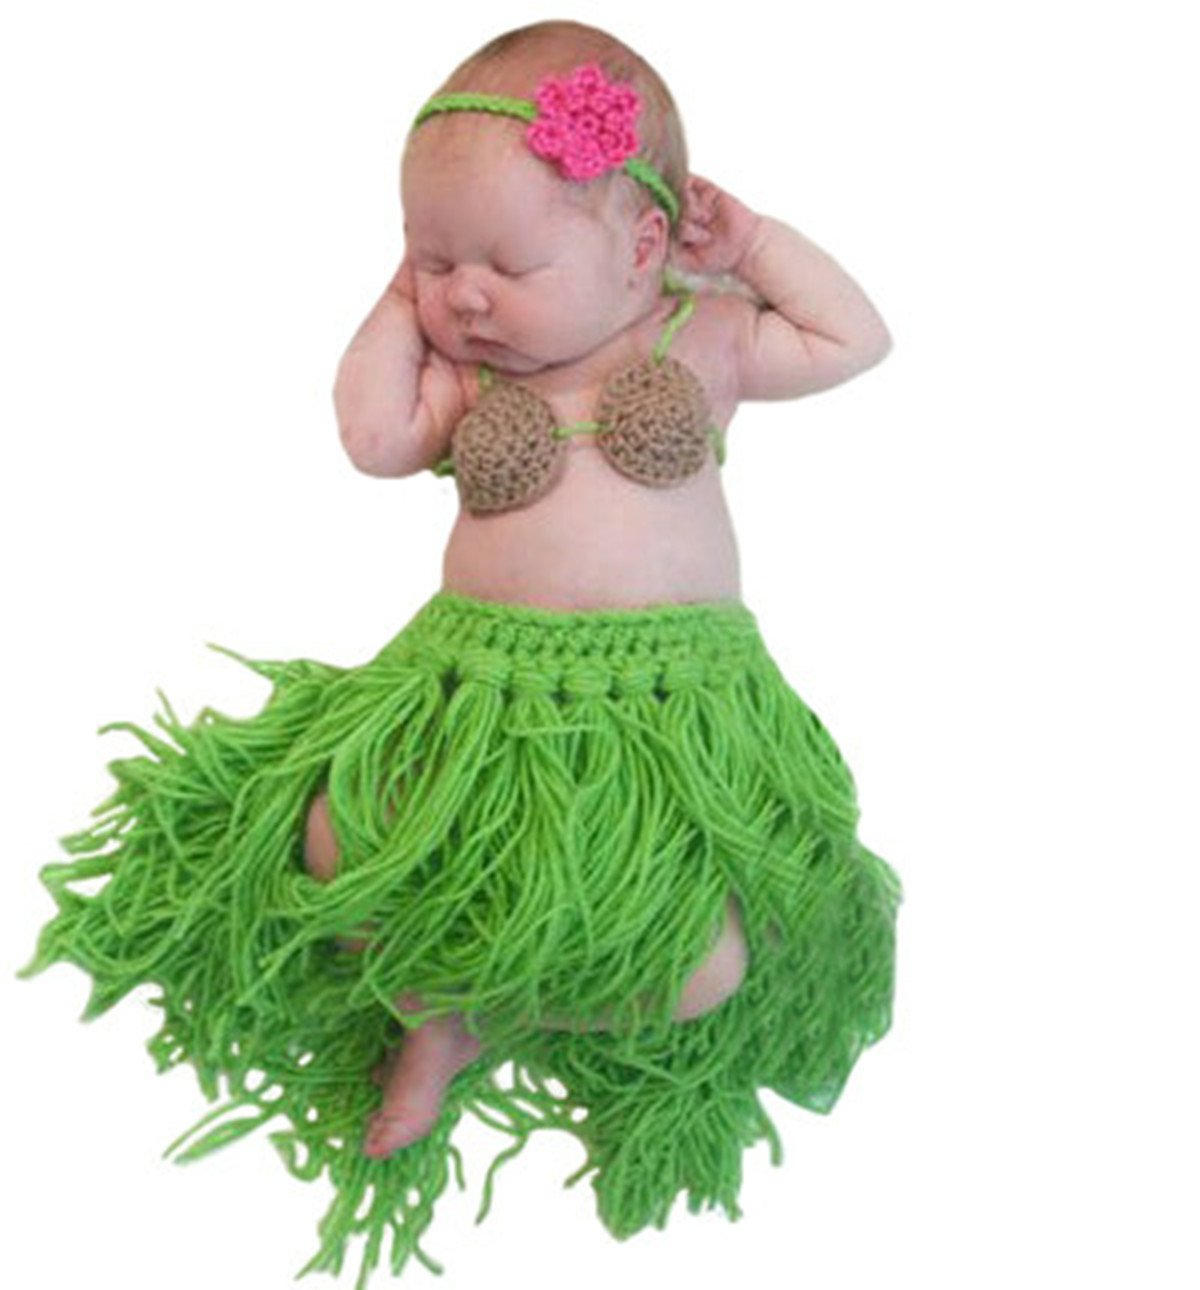 M&G House Newborn Photography Props Baby Handmade Crochet Knitted Outfits Hawaii Hula Skirt